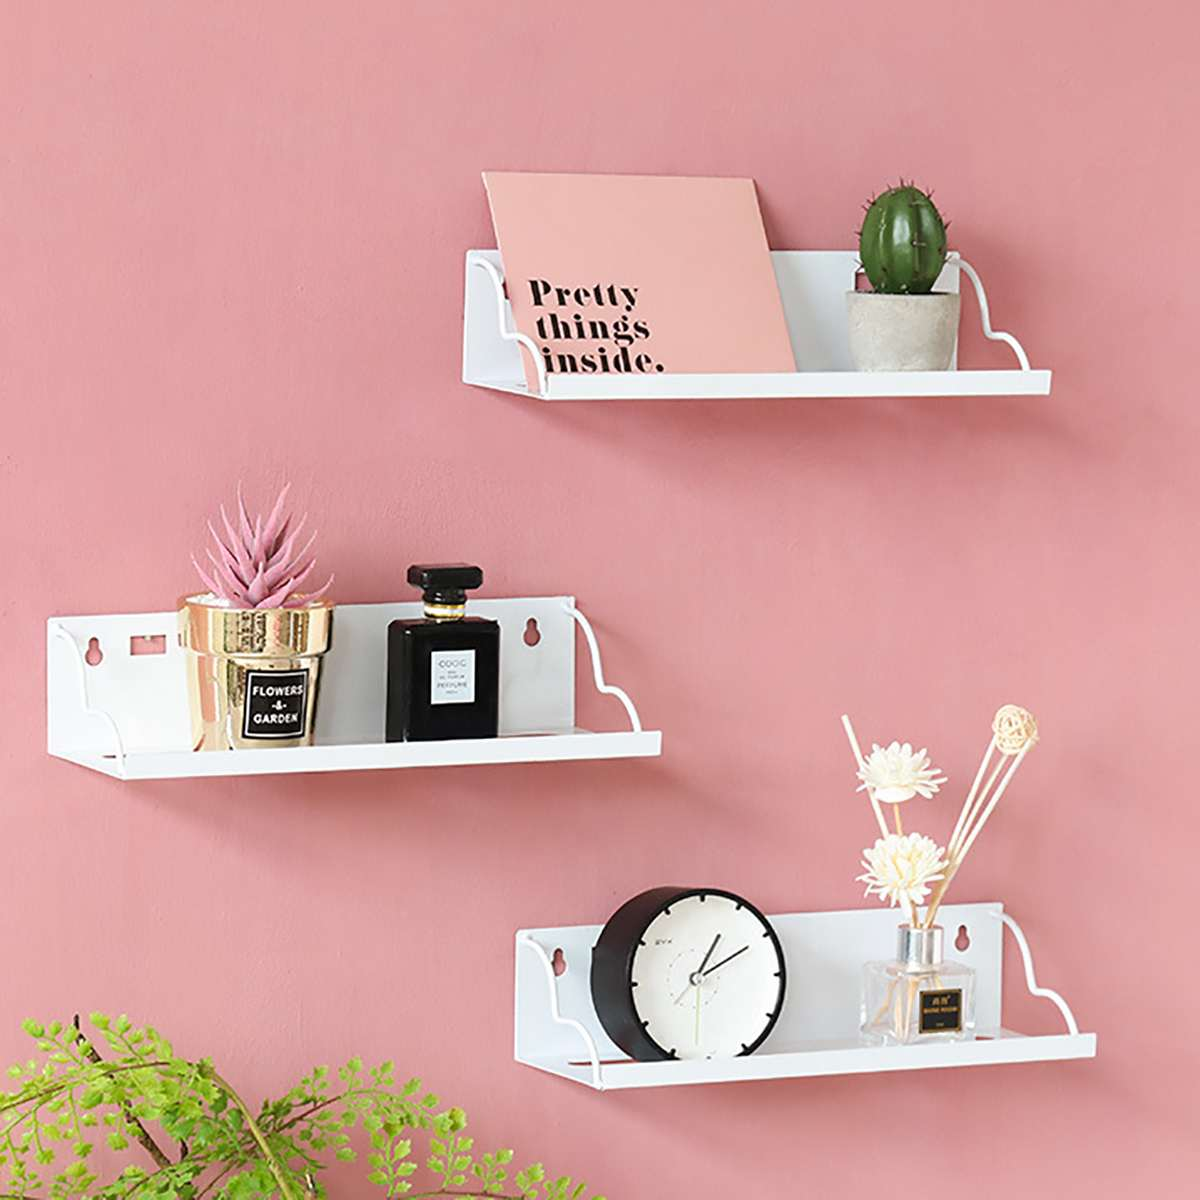 Us 7 88 21 Off Floating Shelves Trays Bookshelves And Display Bookcase Modern Wood Shelving Units For Kids Bedroom Wall Mounted Storage Shelf On